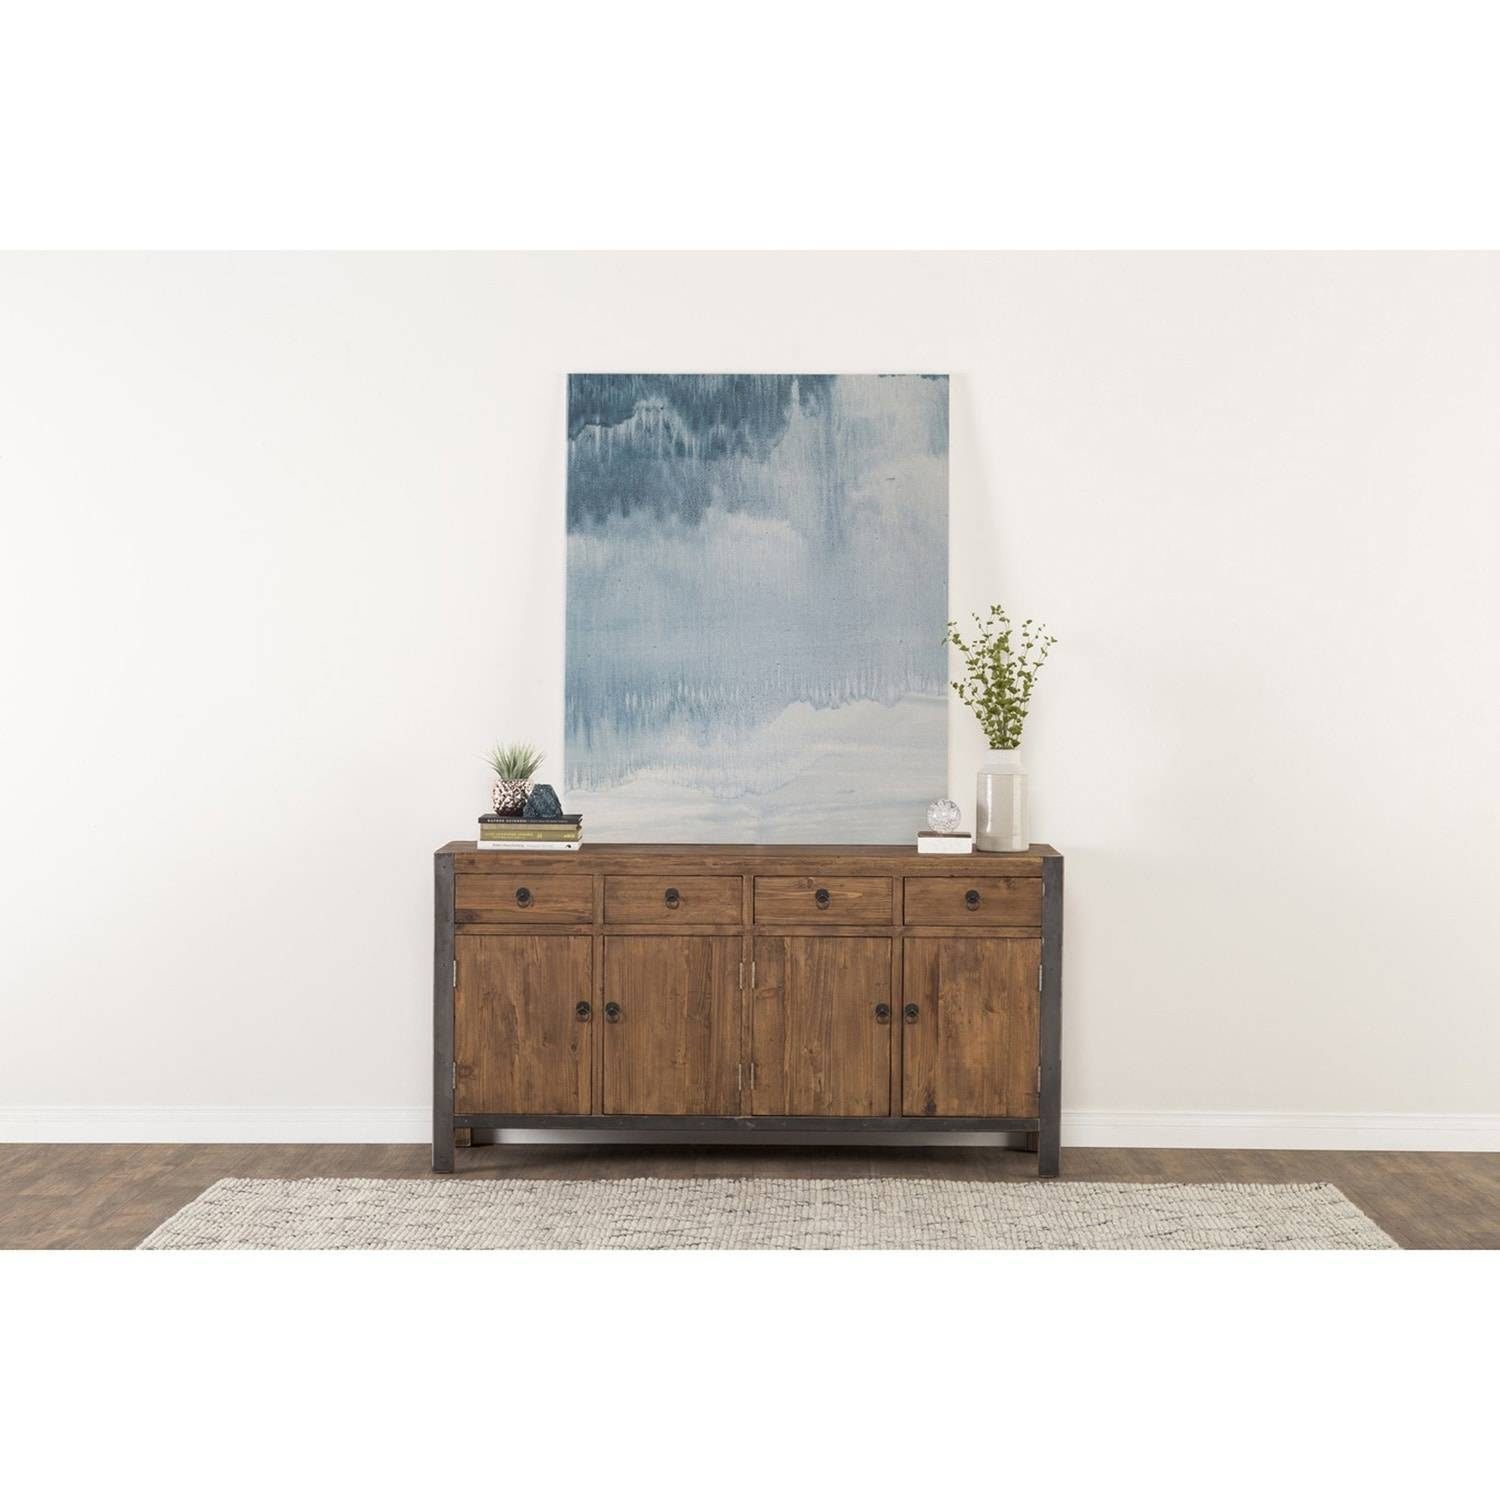 Willow Reclaimed Wood And Iron 70 Inch Buffetkosas Home – Free With Recent 70 Inch Sideboards (#15 of 15)